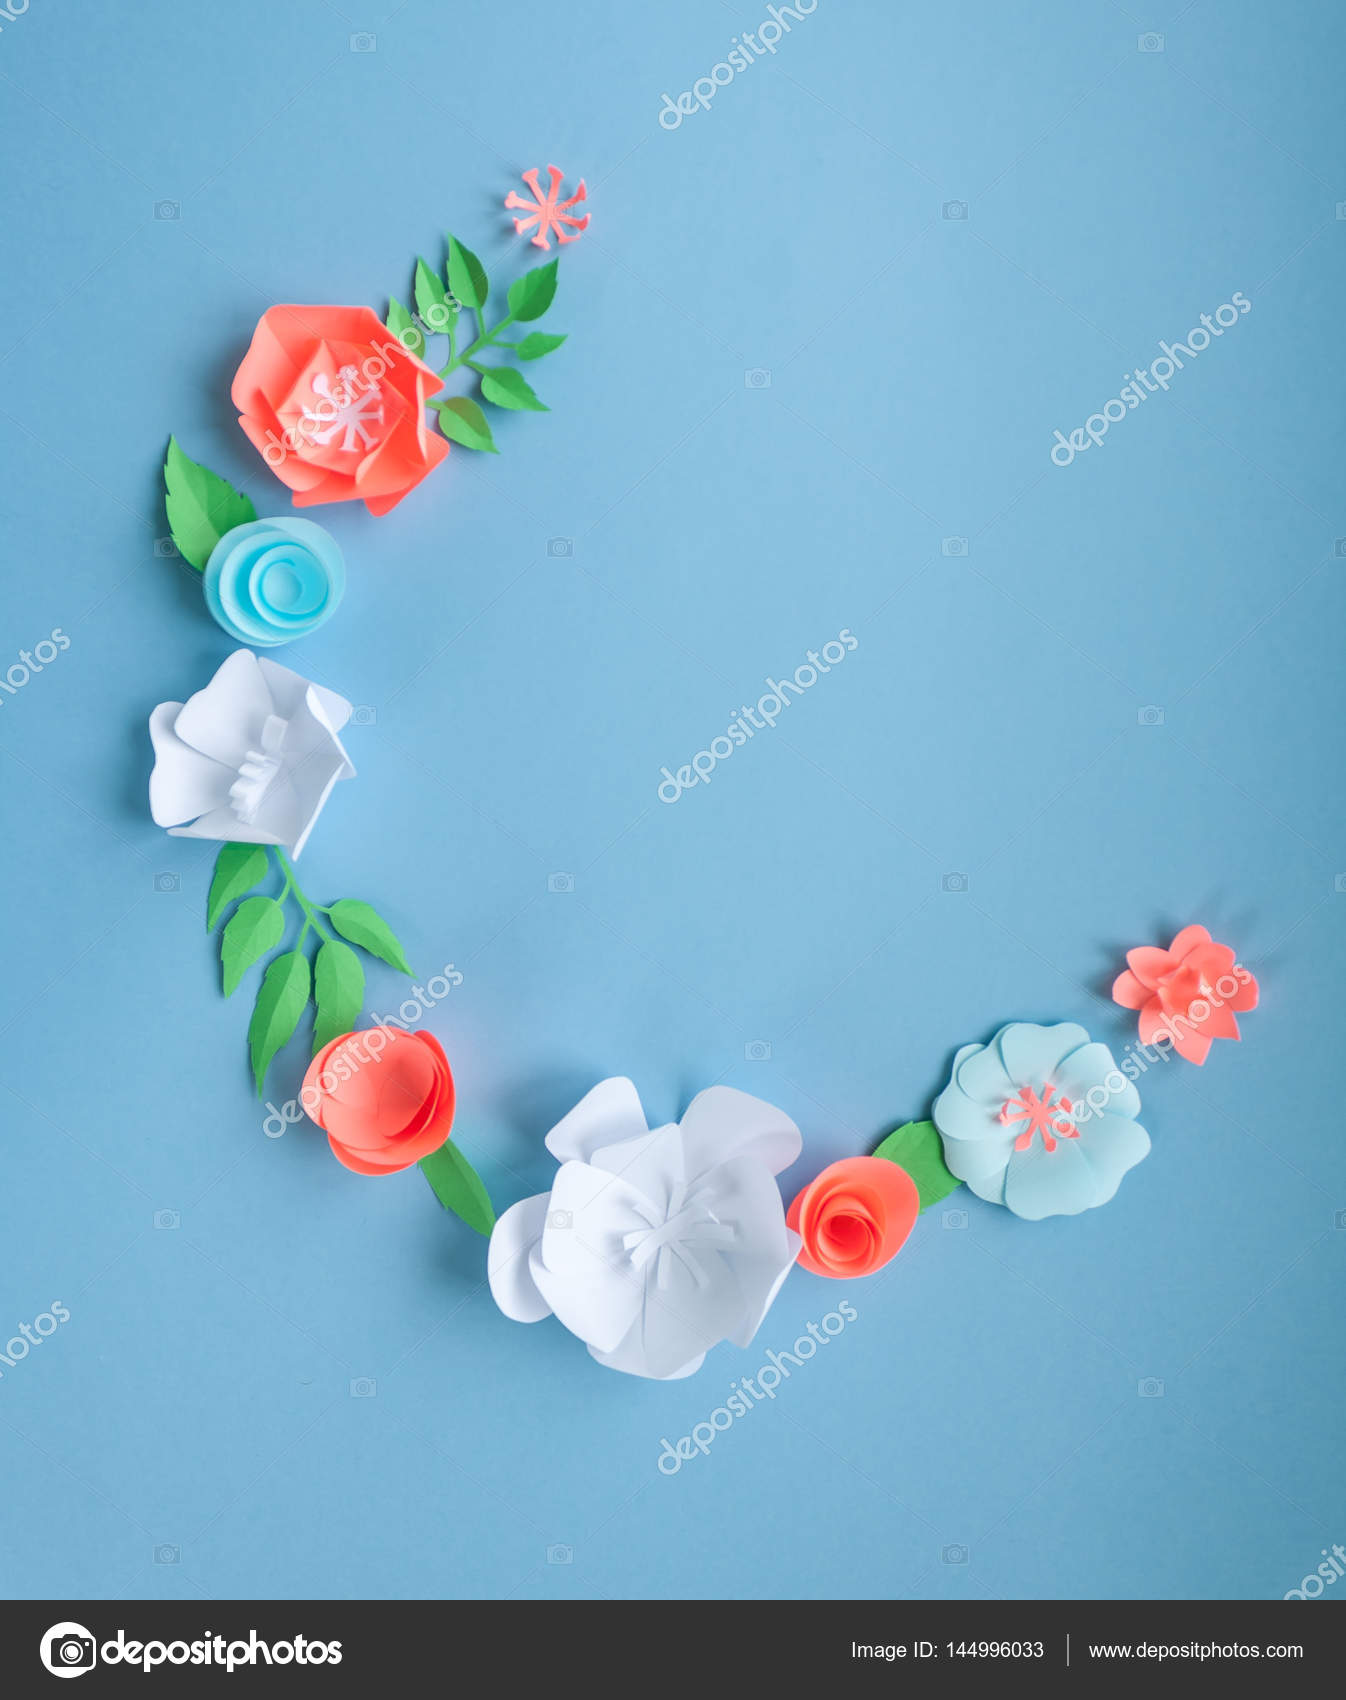 Semicircle Frame With Color Paper Flowers On The Blue Background